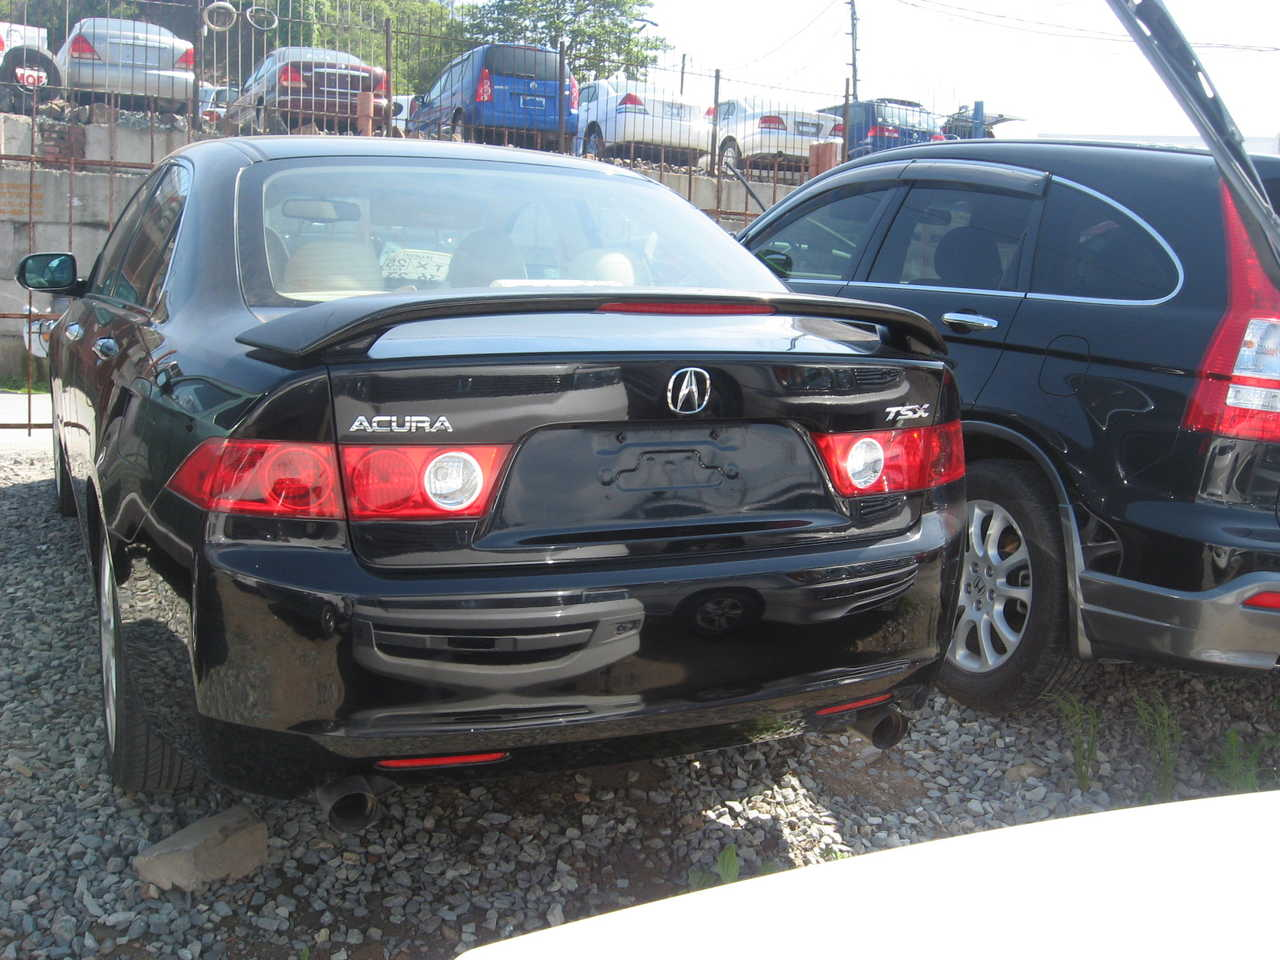 Acura TSX For Sale Cc Gasoline Automatic For Sale - Tsx acura for sale